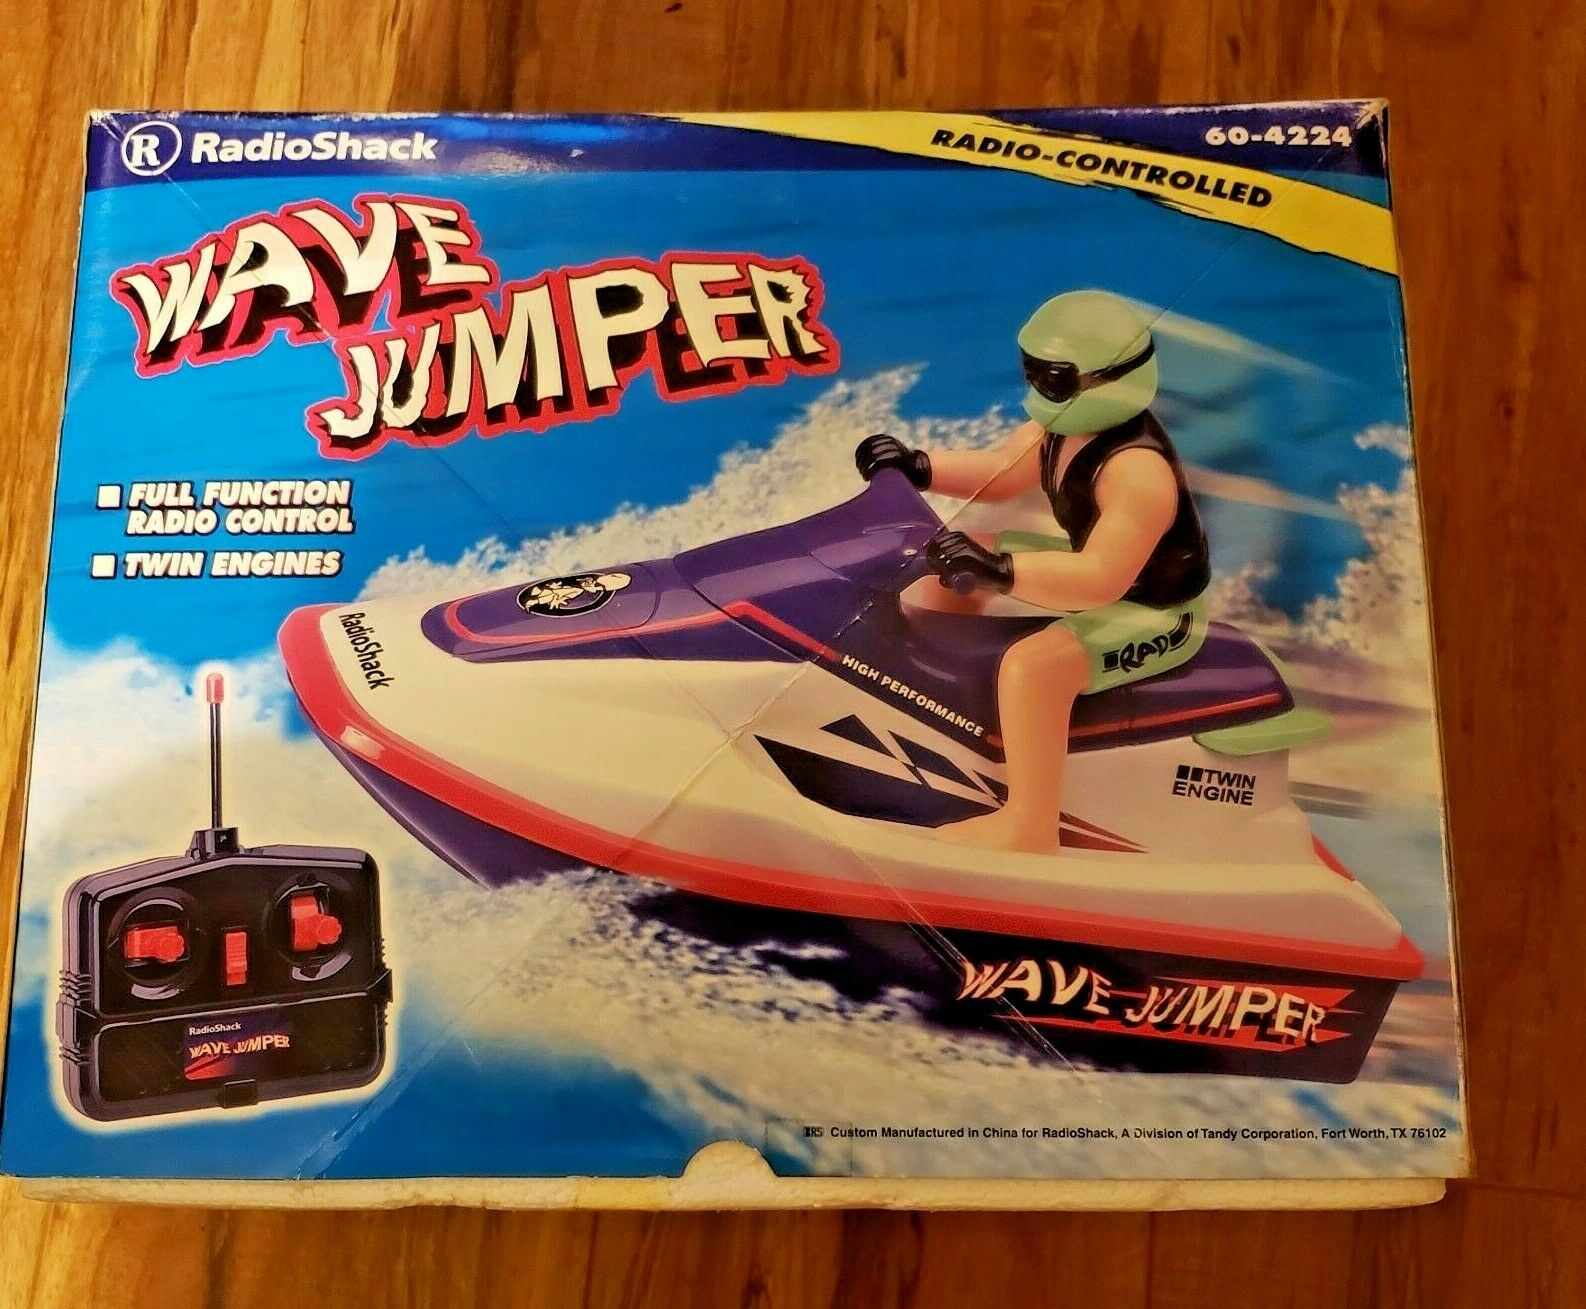 Radioshack Wave Jumper Rc Jetski For Sale Online Ebay